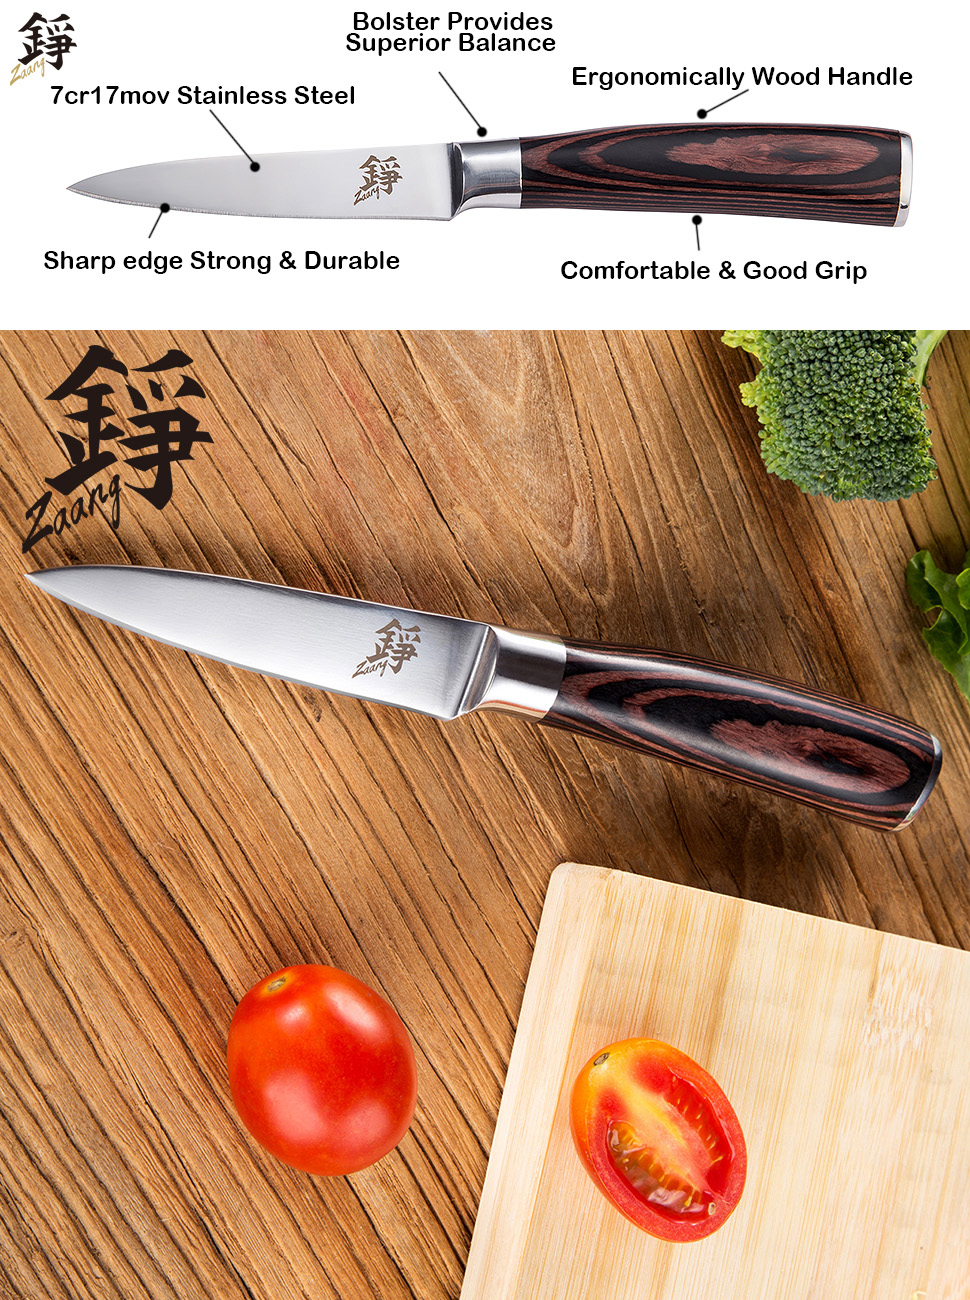 amazon com zaang paring knife 3 5 inch high carbon stainless zaang 3 5 inch paring knife perfectly controls cutting slicing and peeling